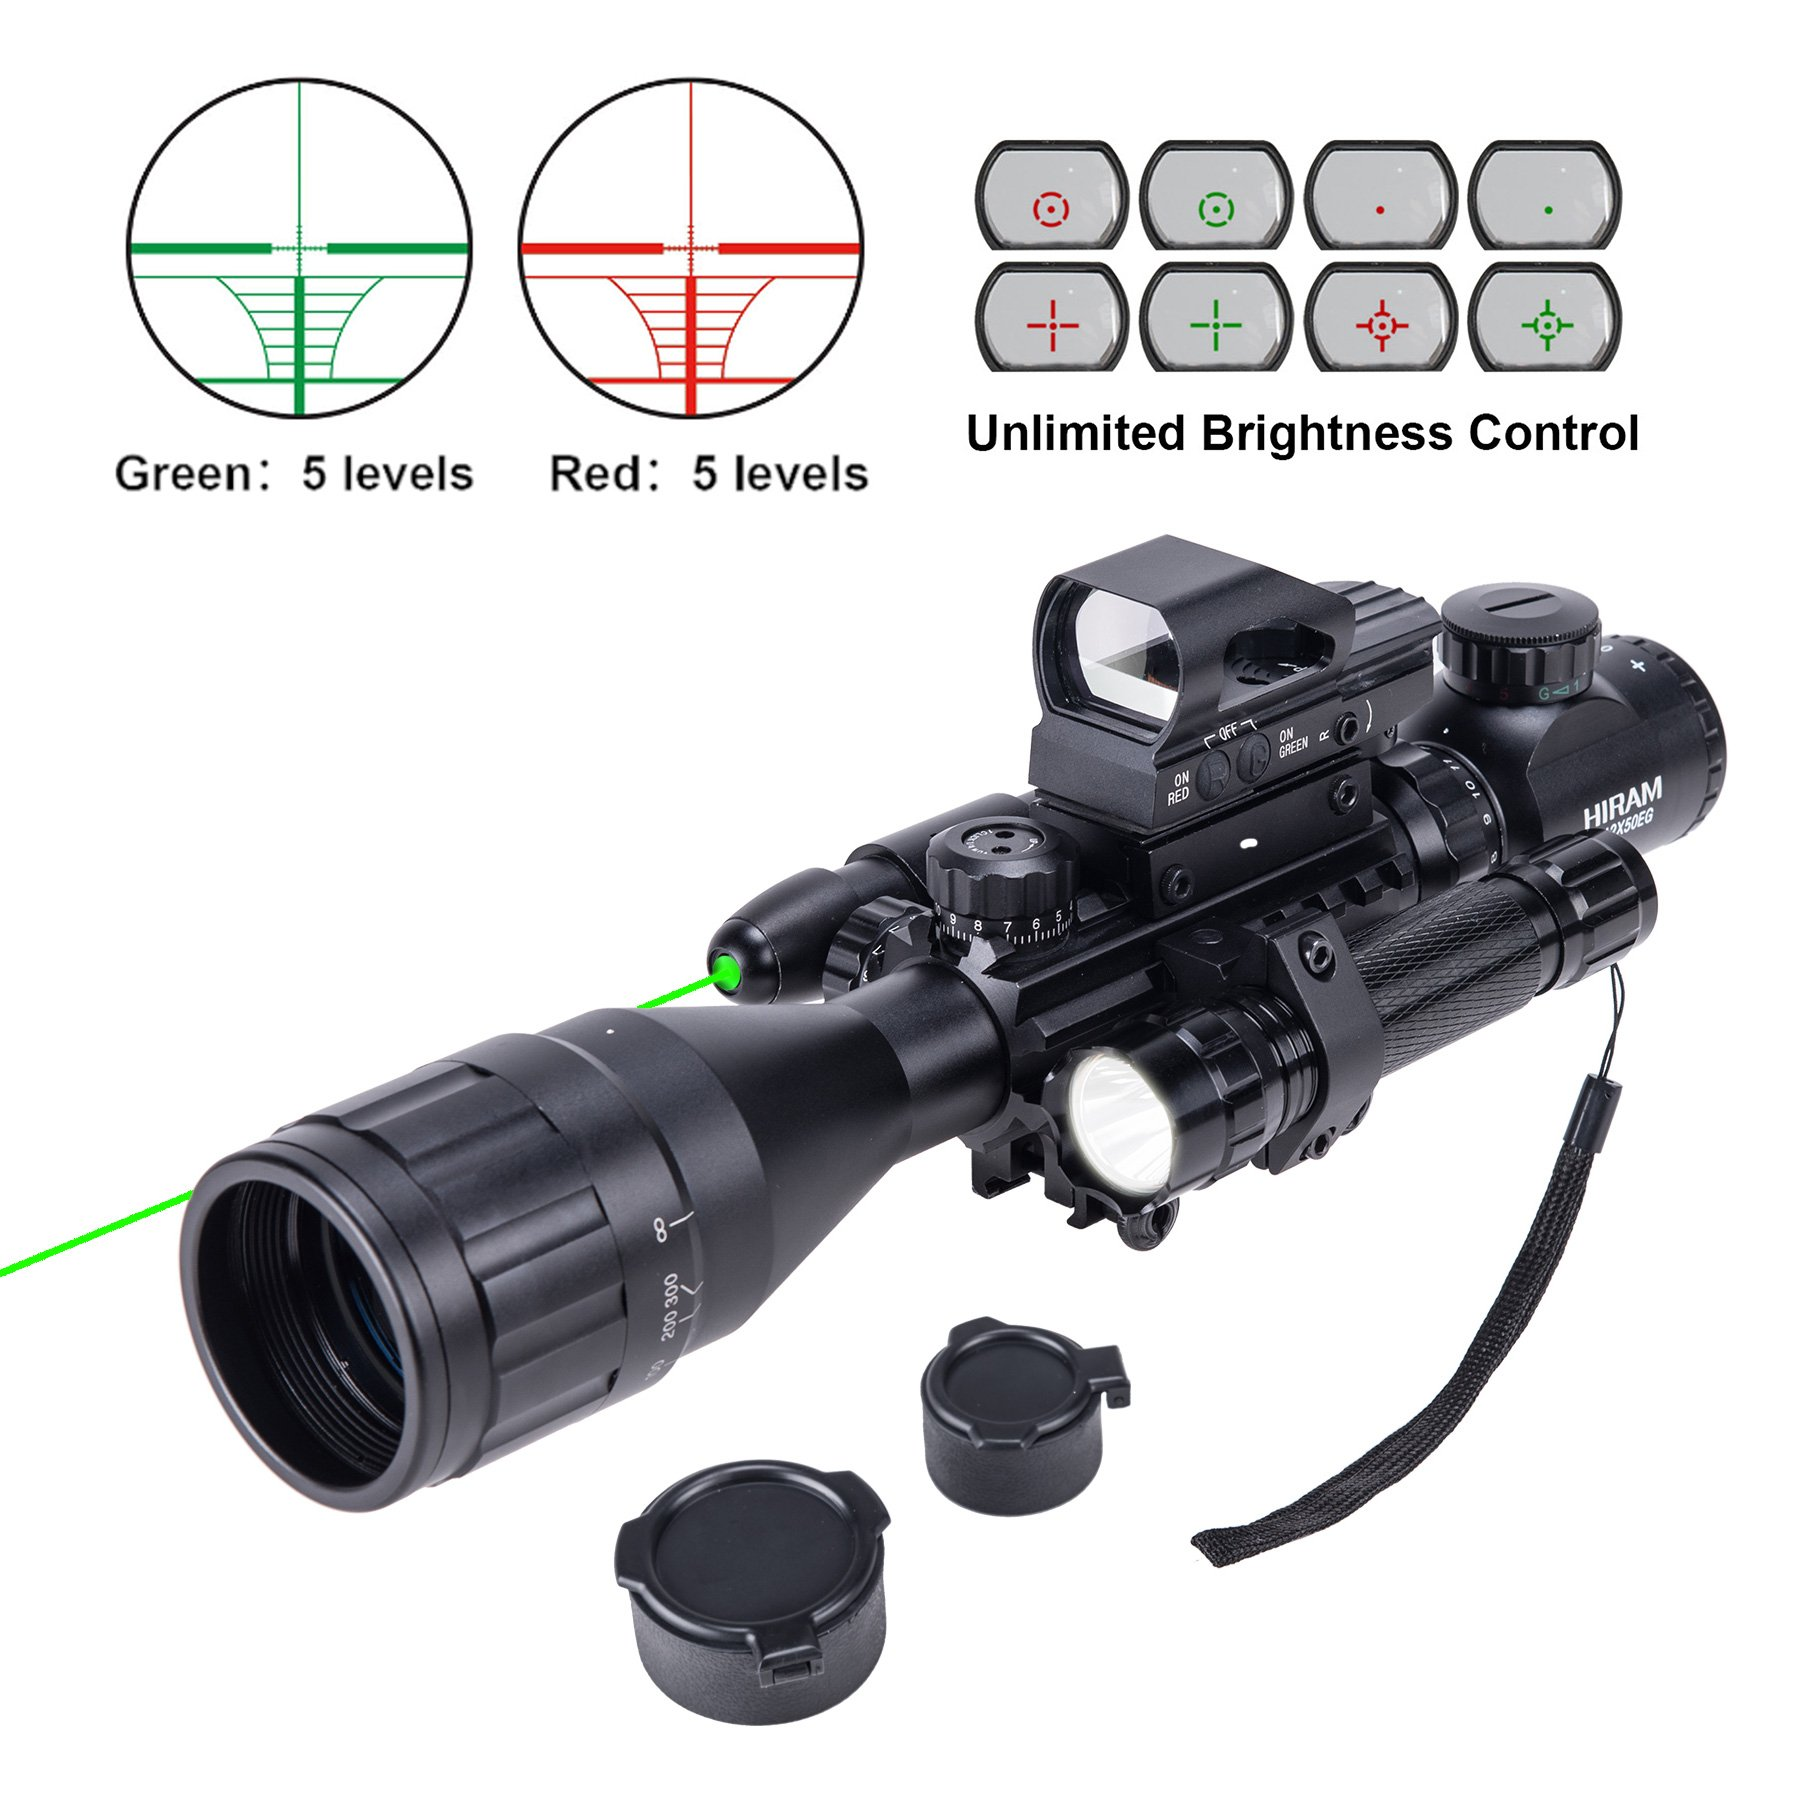 Hiram Parallax Adjustable 4-16x50EG Rifle Scope Combo with Green Laser, Reflex Sight, and 5 Brightness Modes Flashlight